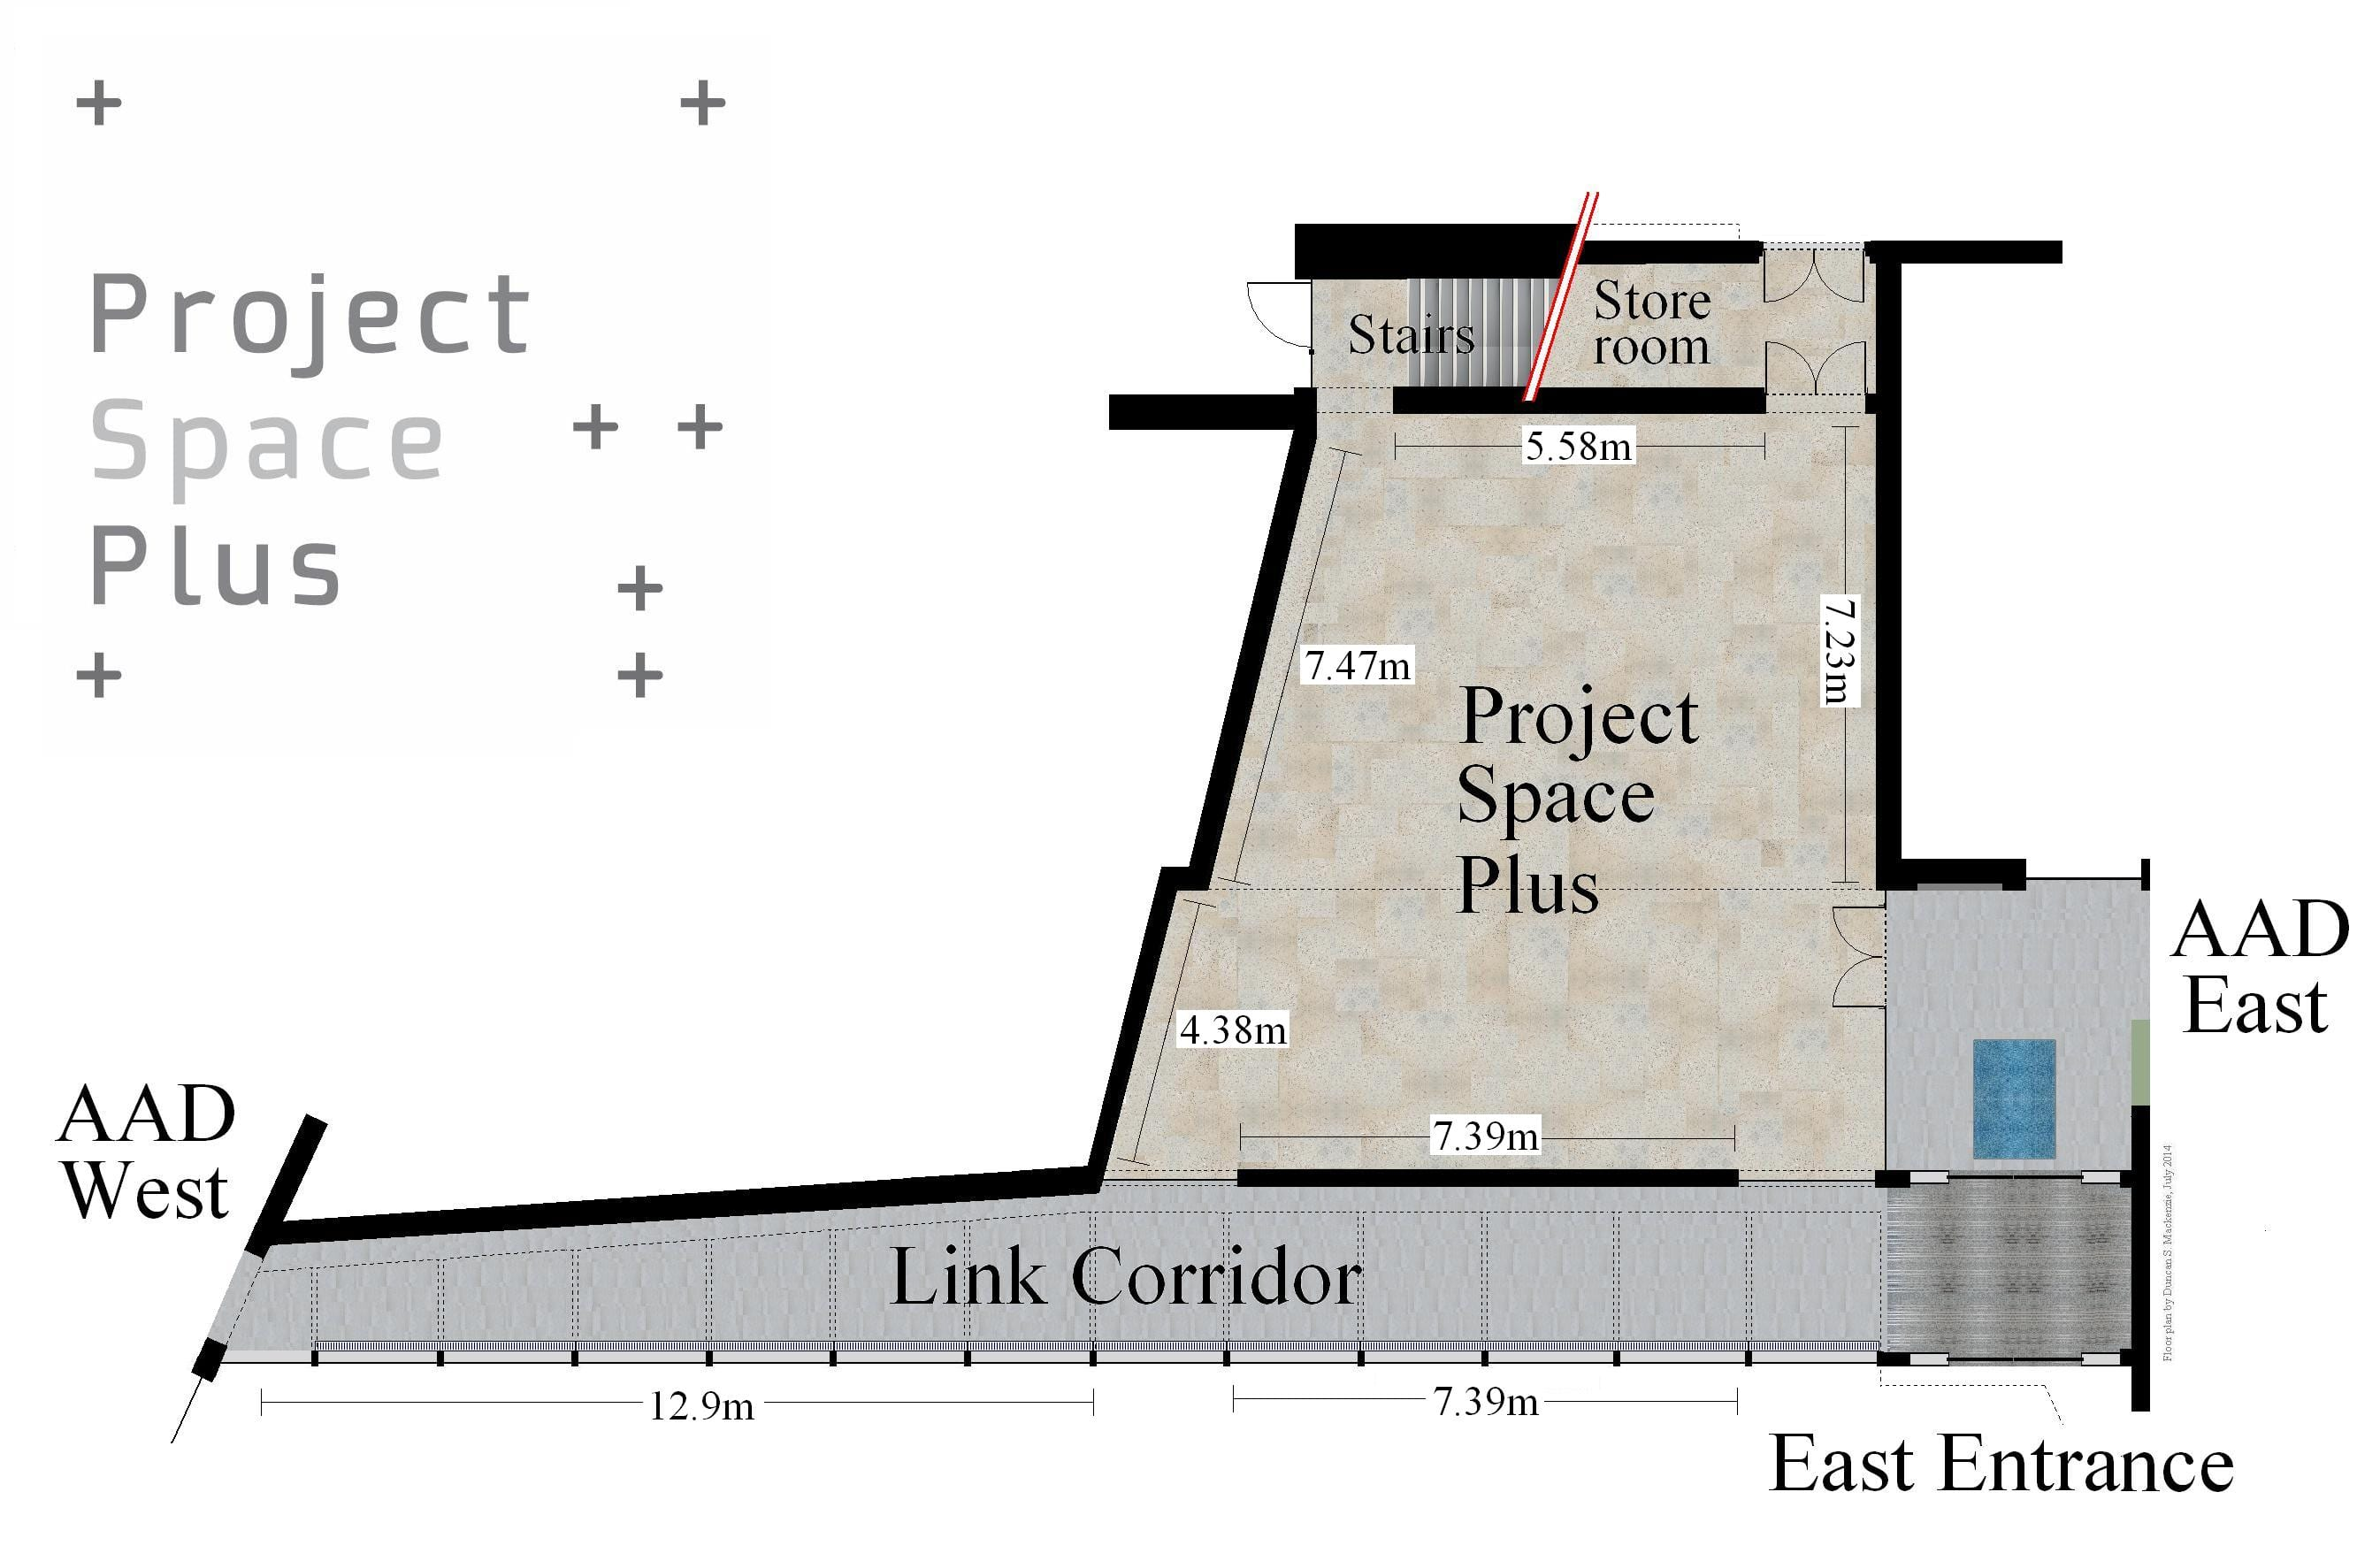 Project Space Plus Ground Floor Plan (with wall measurements in metres).